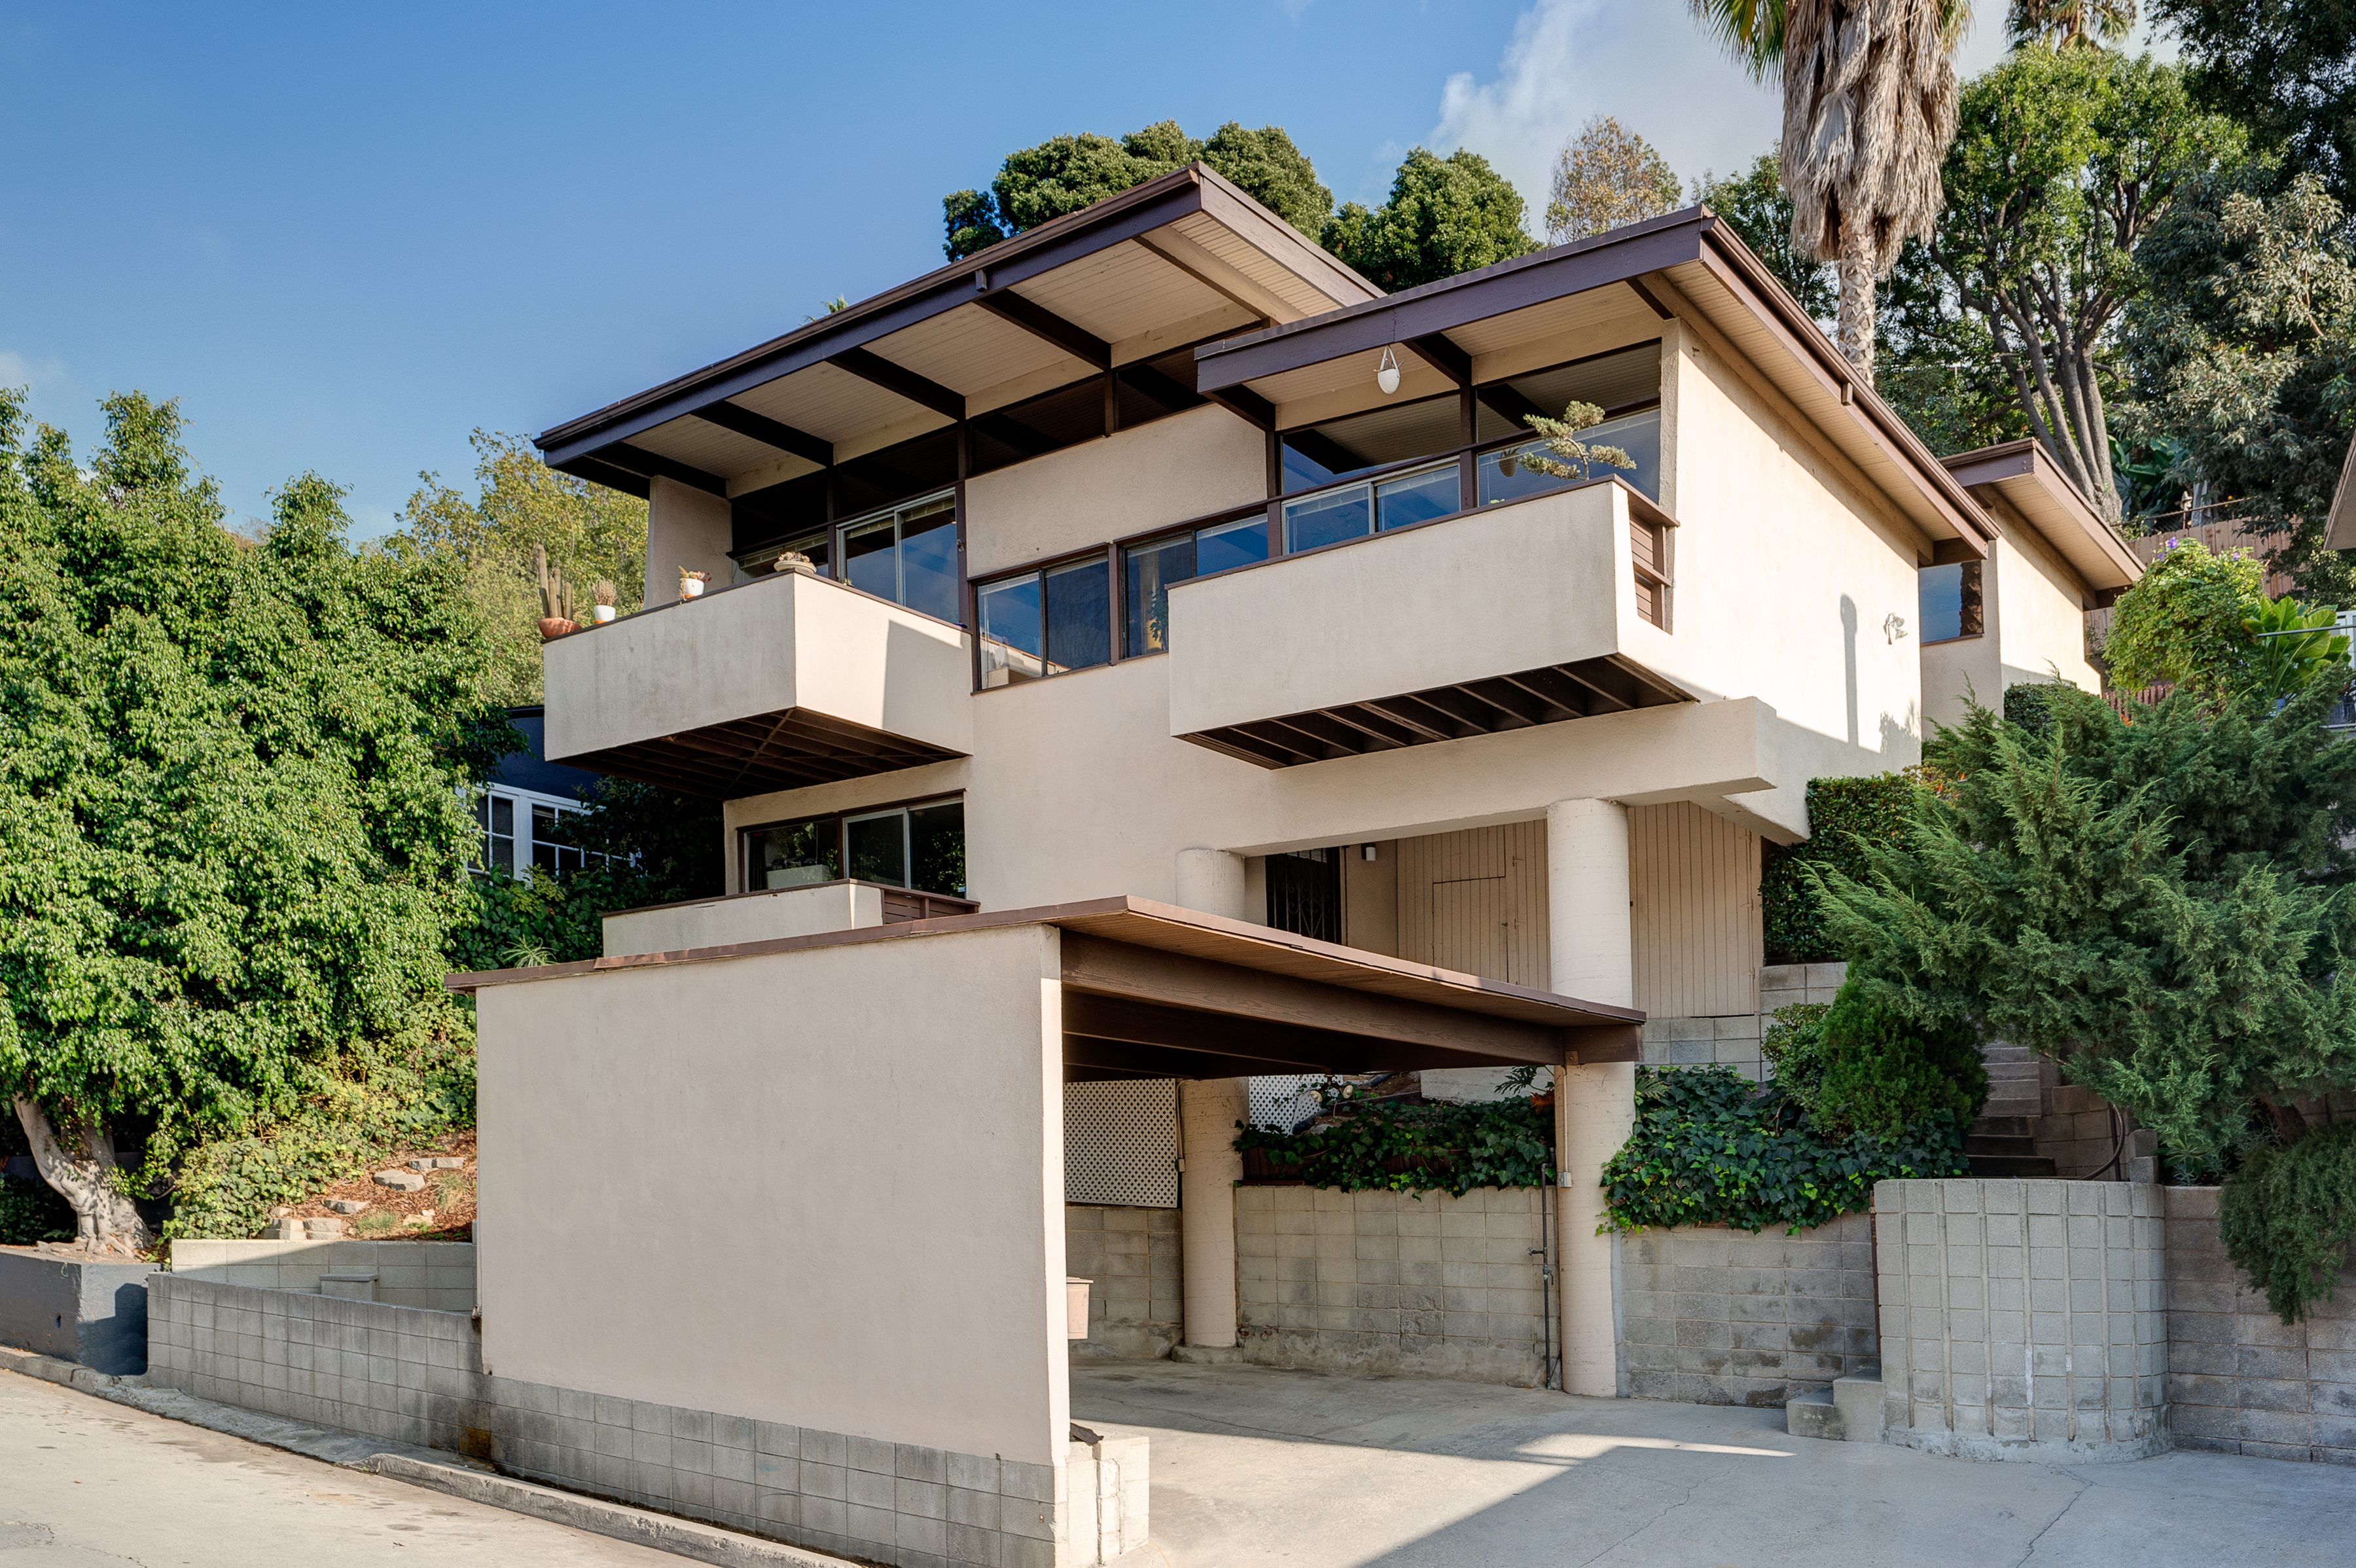 Modern homes los angeles brentwood untouched 1960 mid century modern - Stacked 1960 Post And Beam In Silver Lake Asks 1 8m